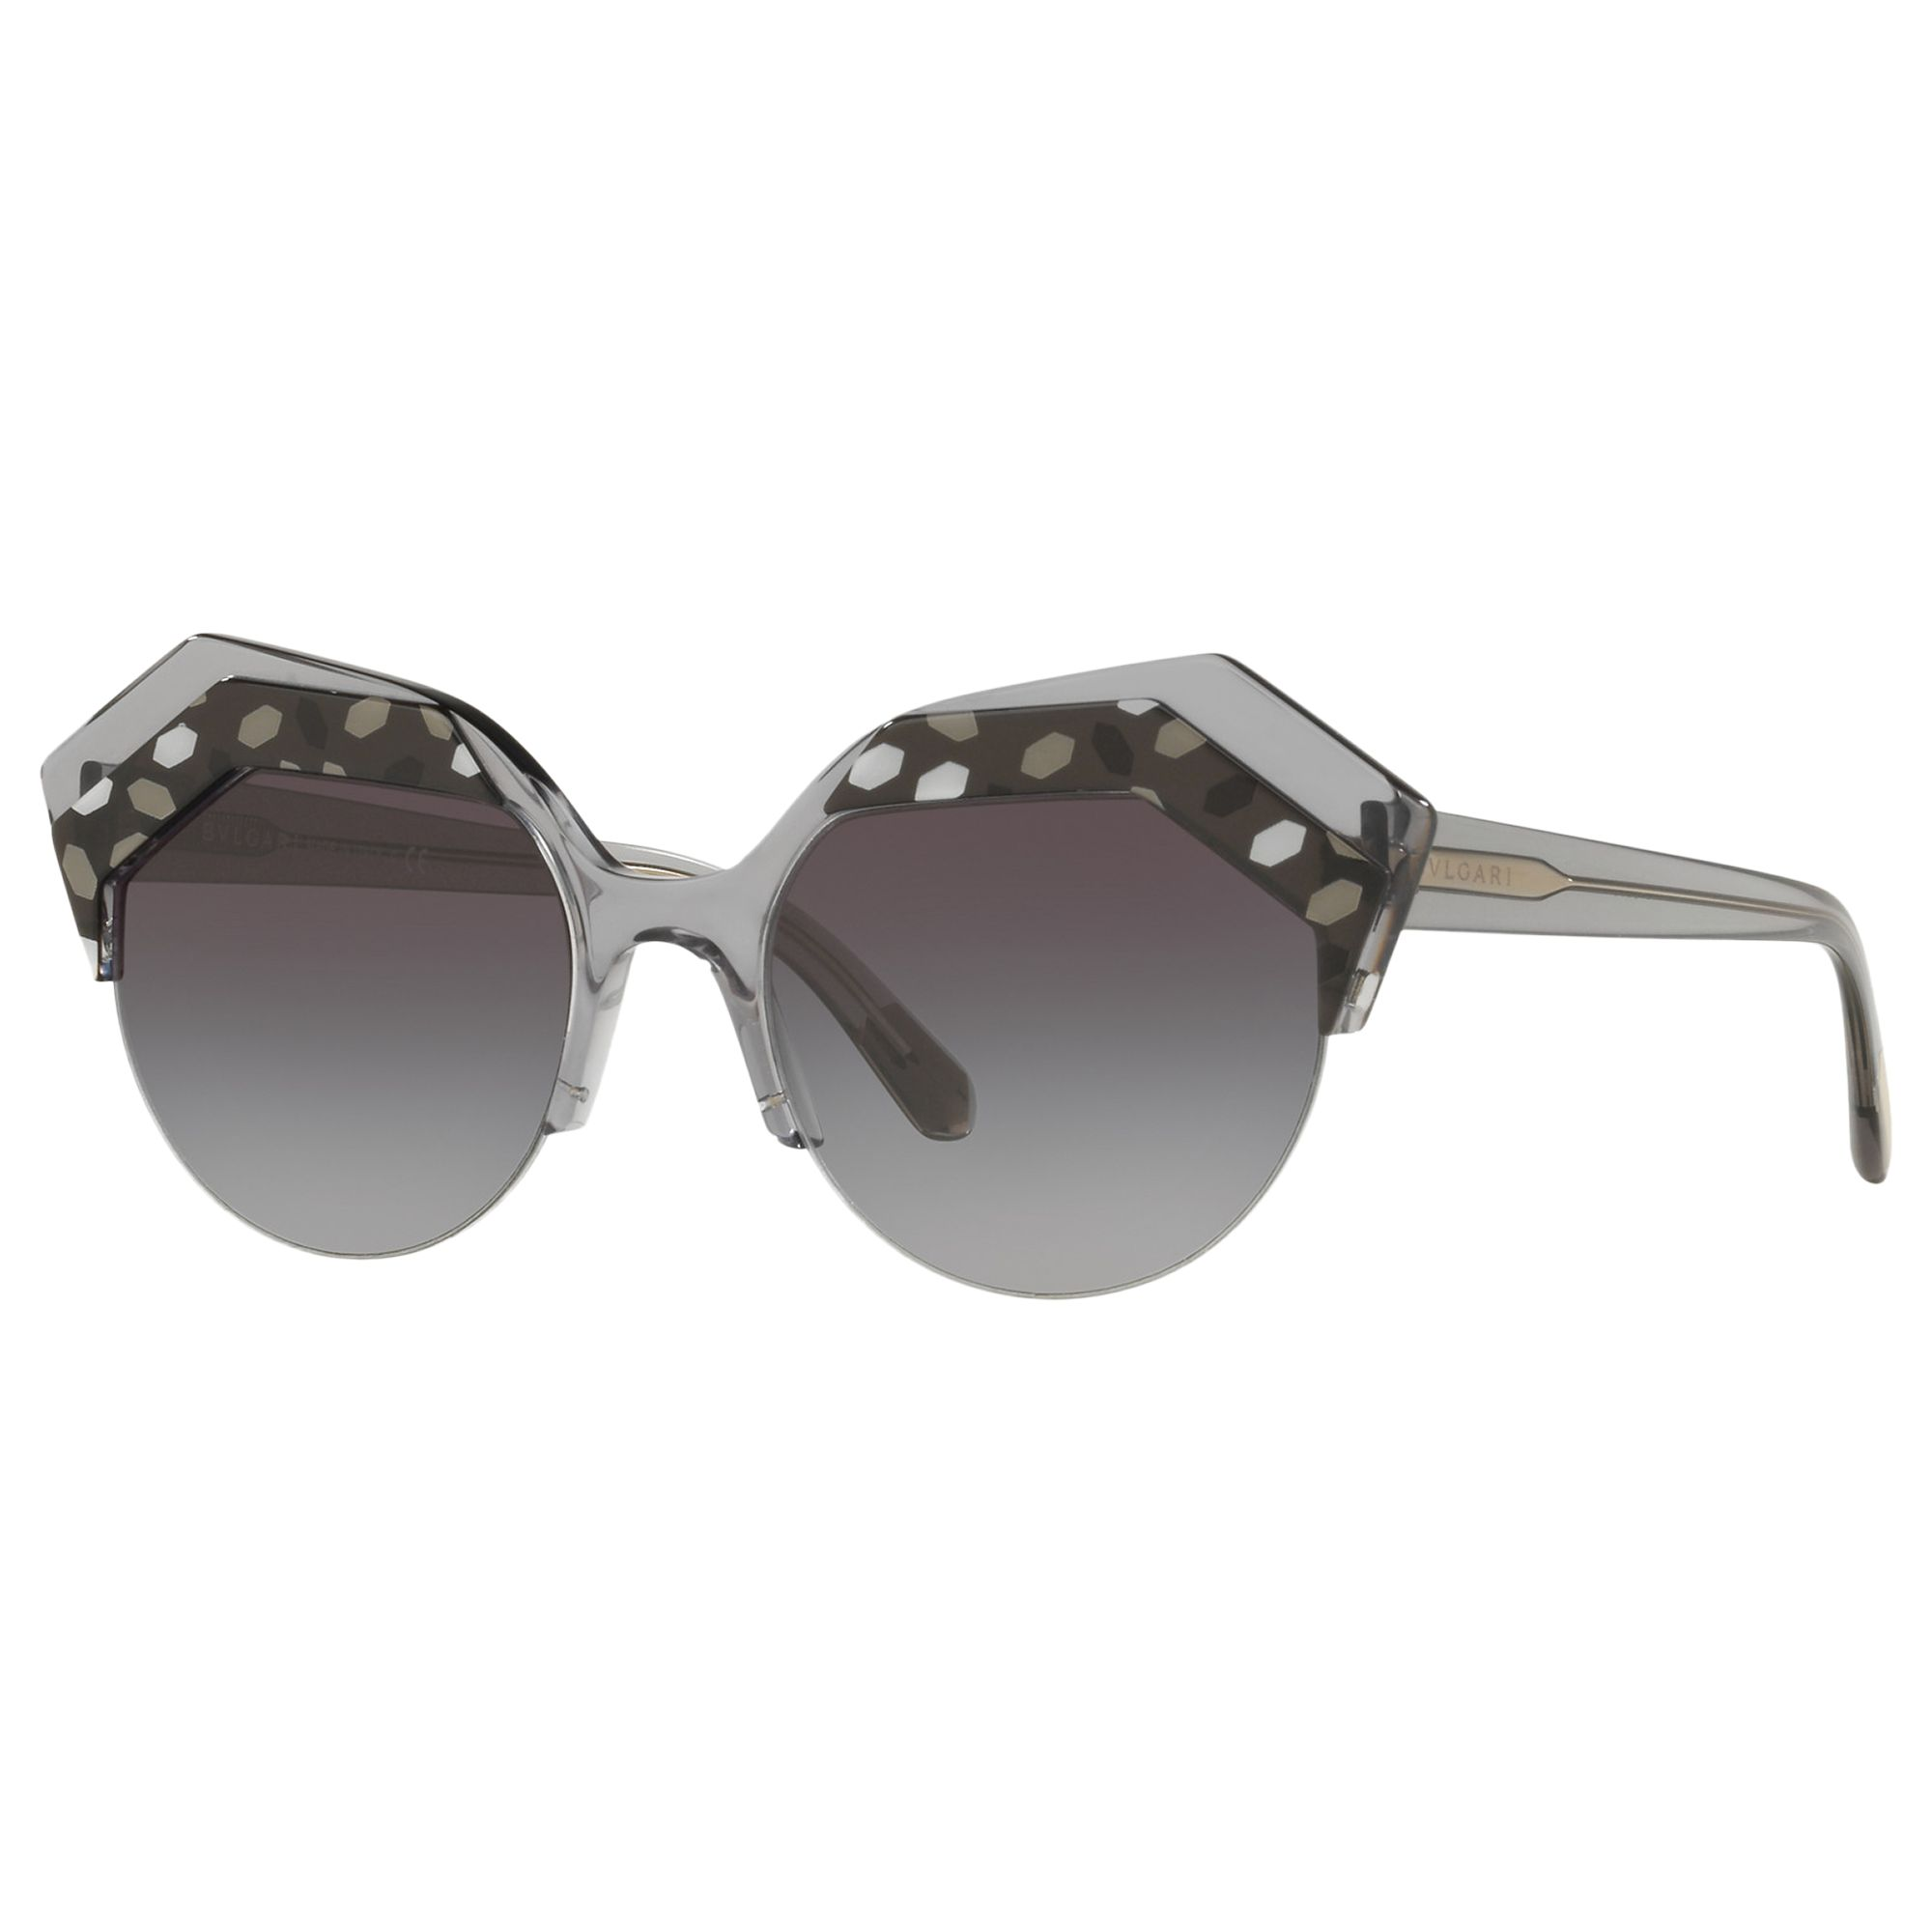 Bvlgari BVLGARI BV8203 Women's Embellished Round Sunglasses, Clear Grey/Grey Gradient